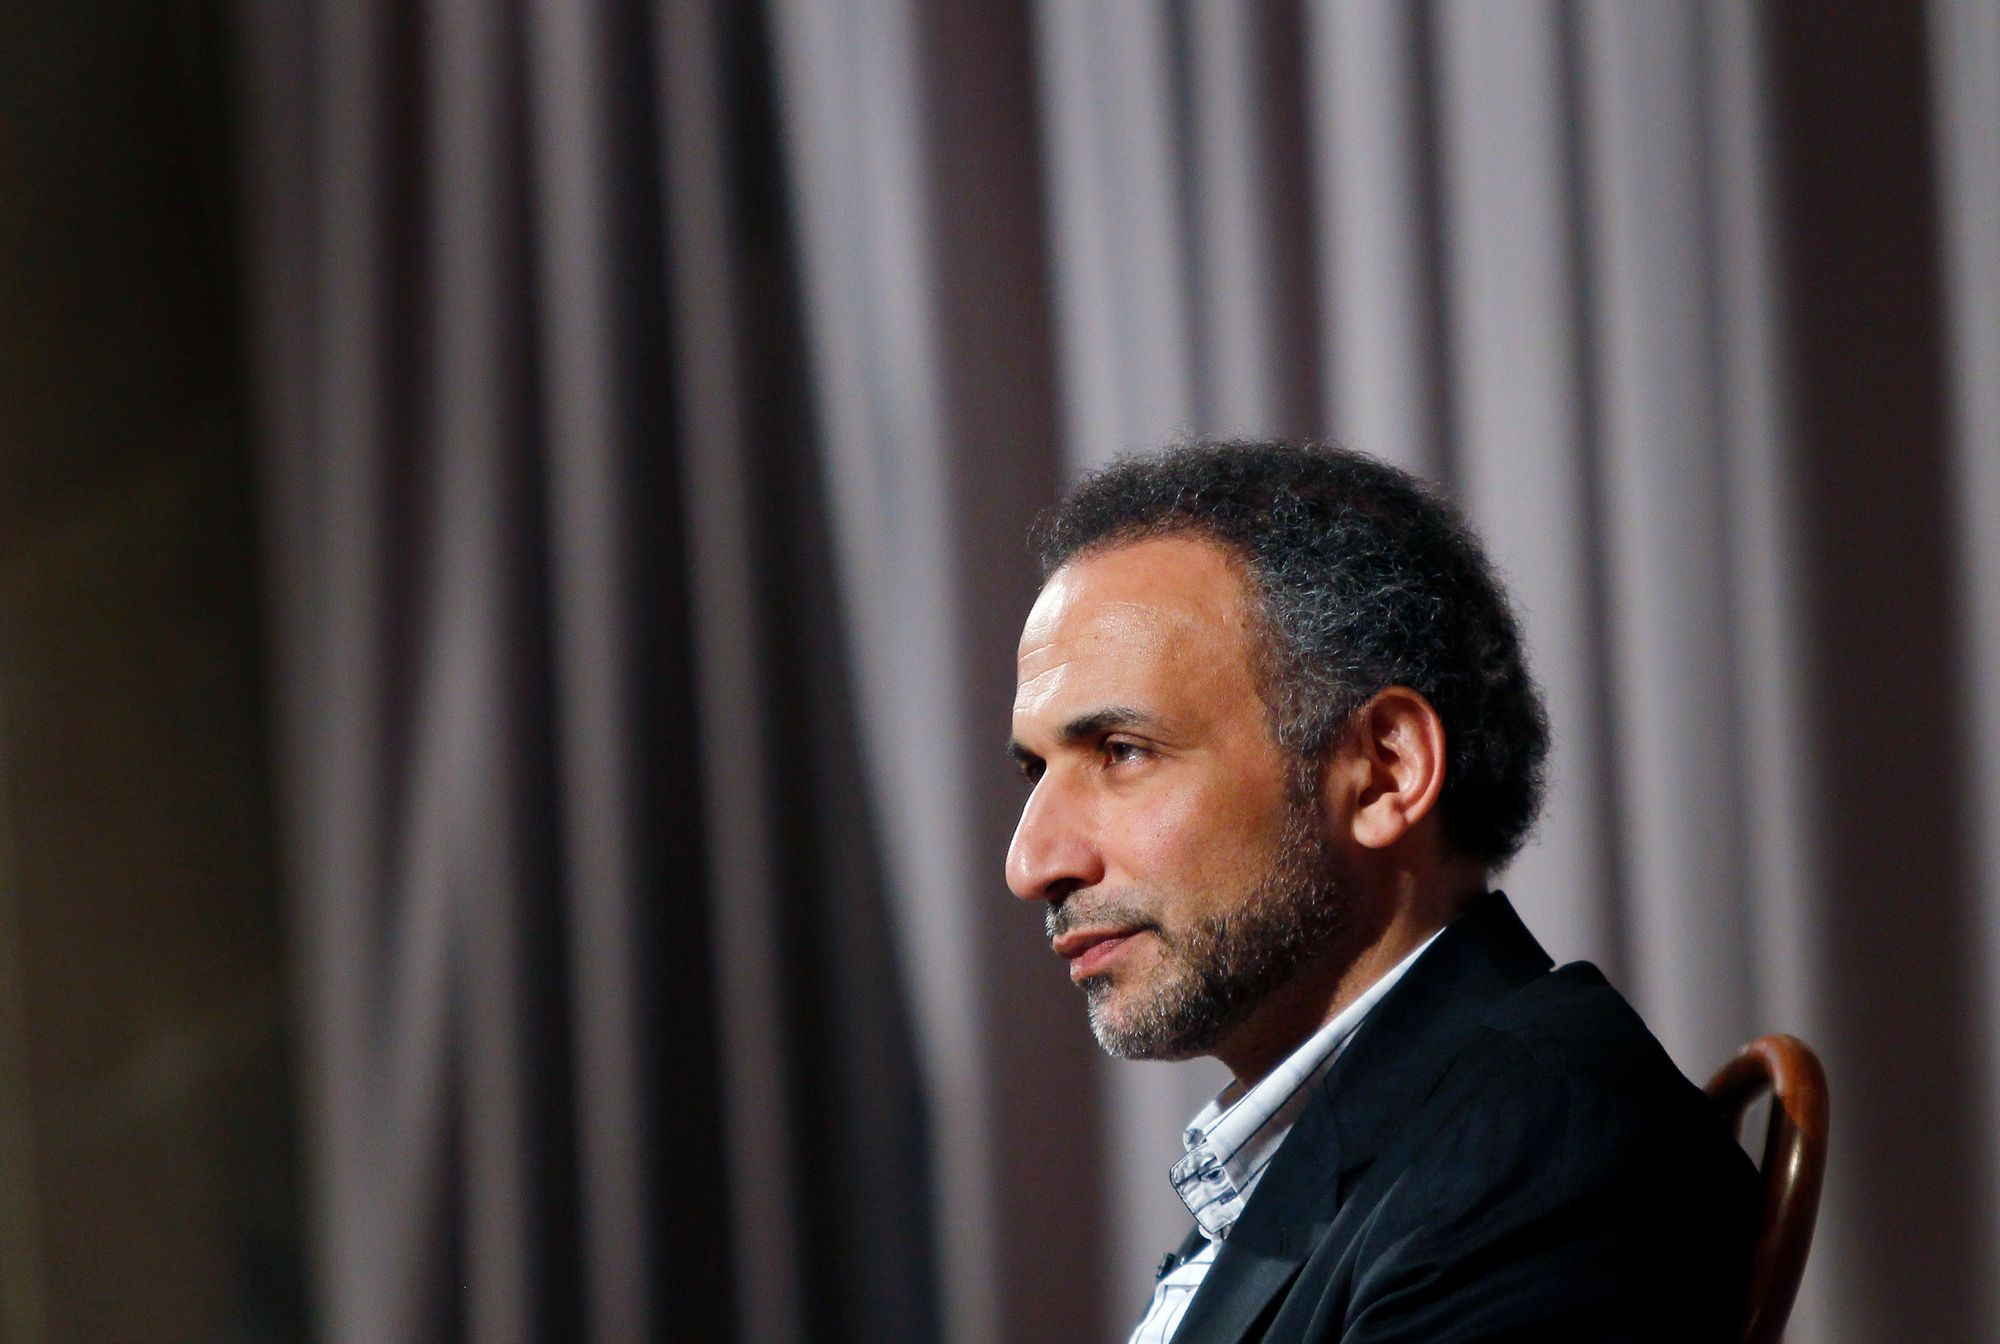 L'islamologue Tariq Ramadan, photographié à New York.